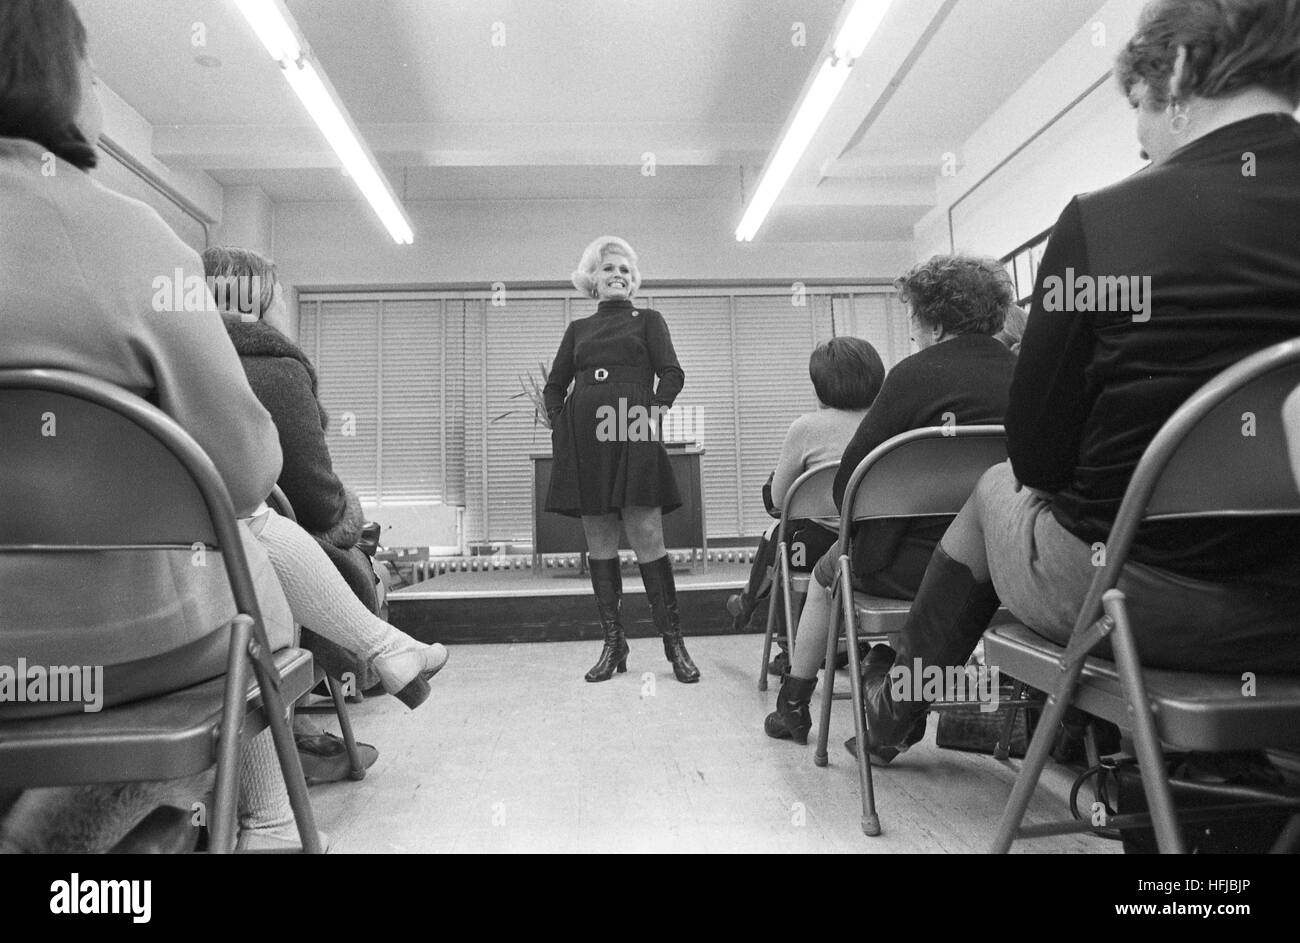 Jean Nidetch, cofounder of Weight Watchers, speaking to a small audience in 1969 - Stock Image